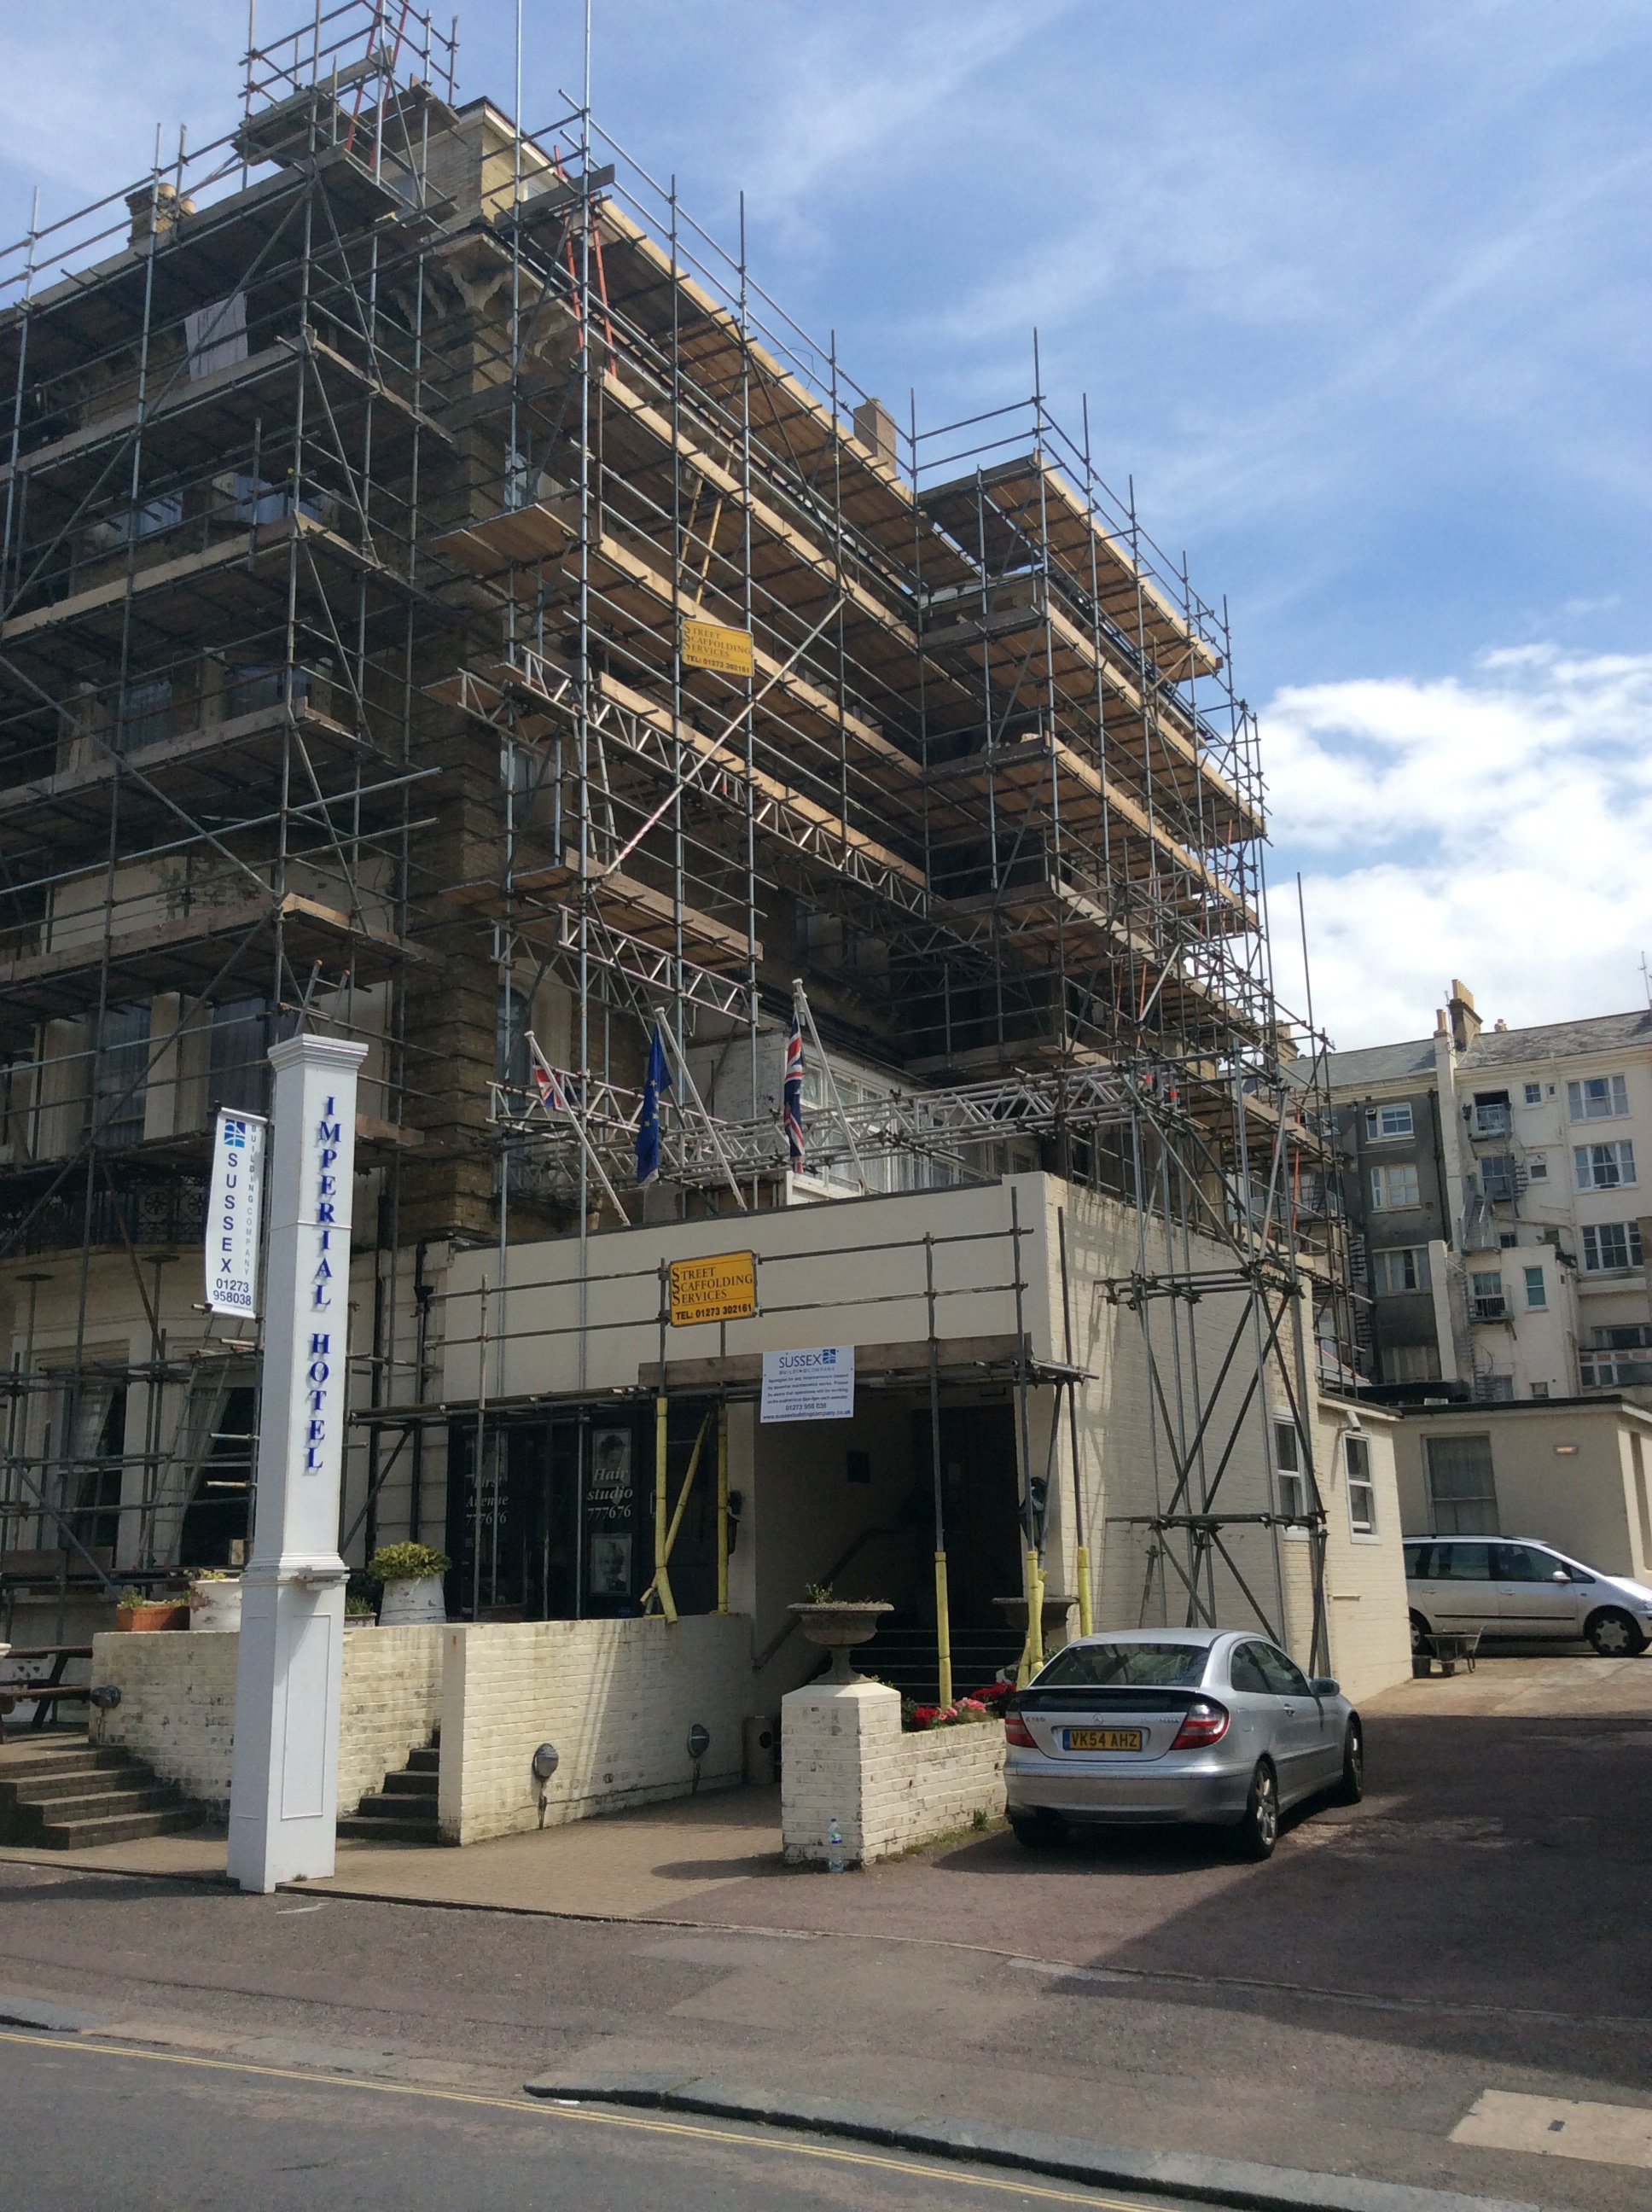 scaffolding for building repairs